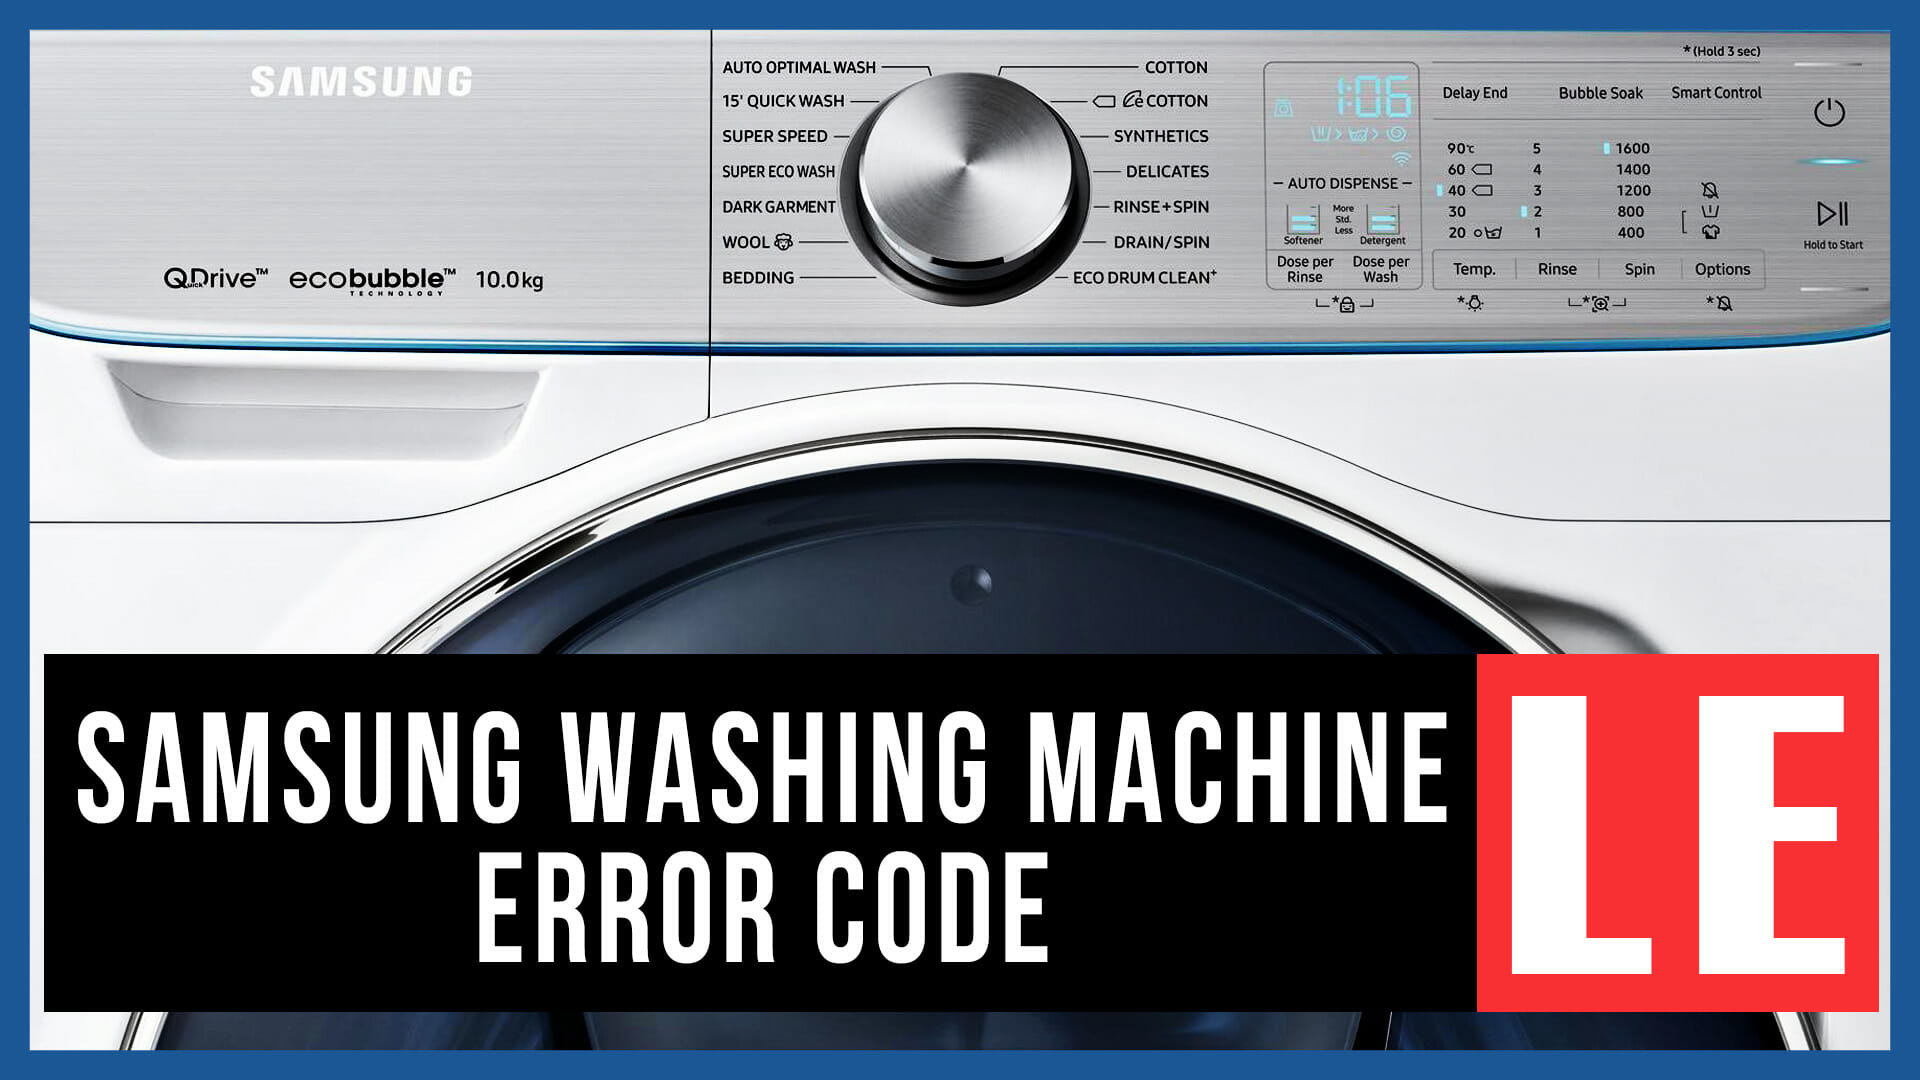 Samsung Washer Error Code Le Causes How Fix Problem